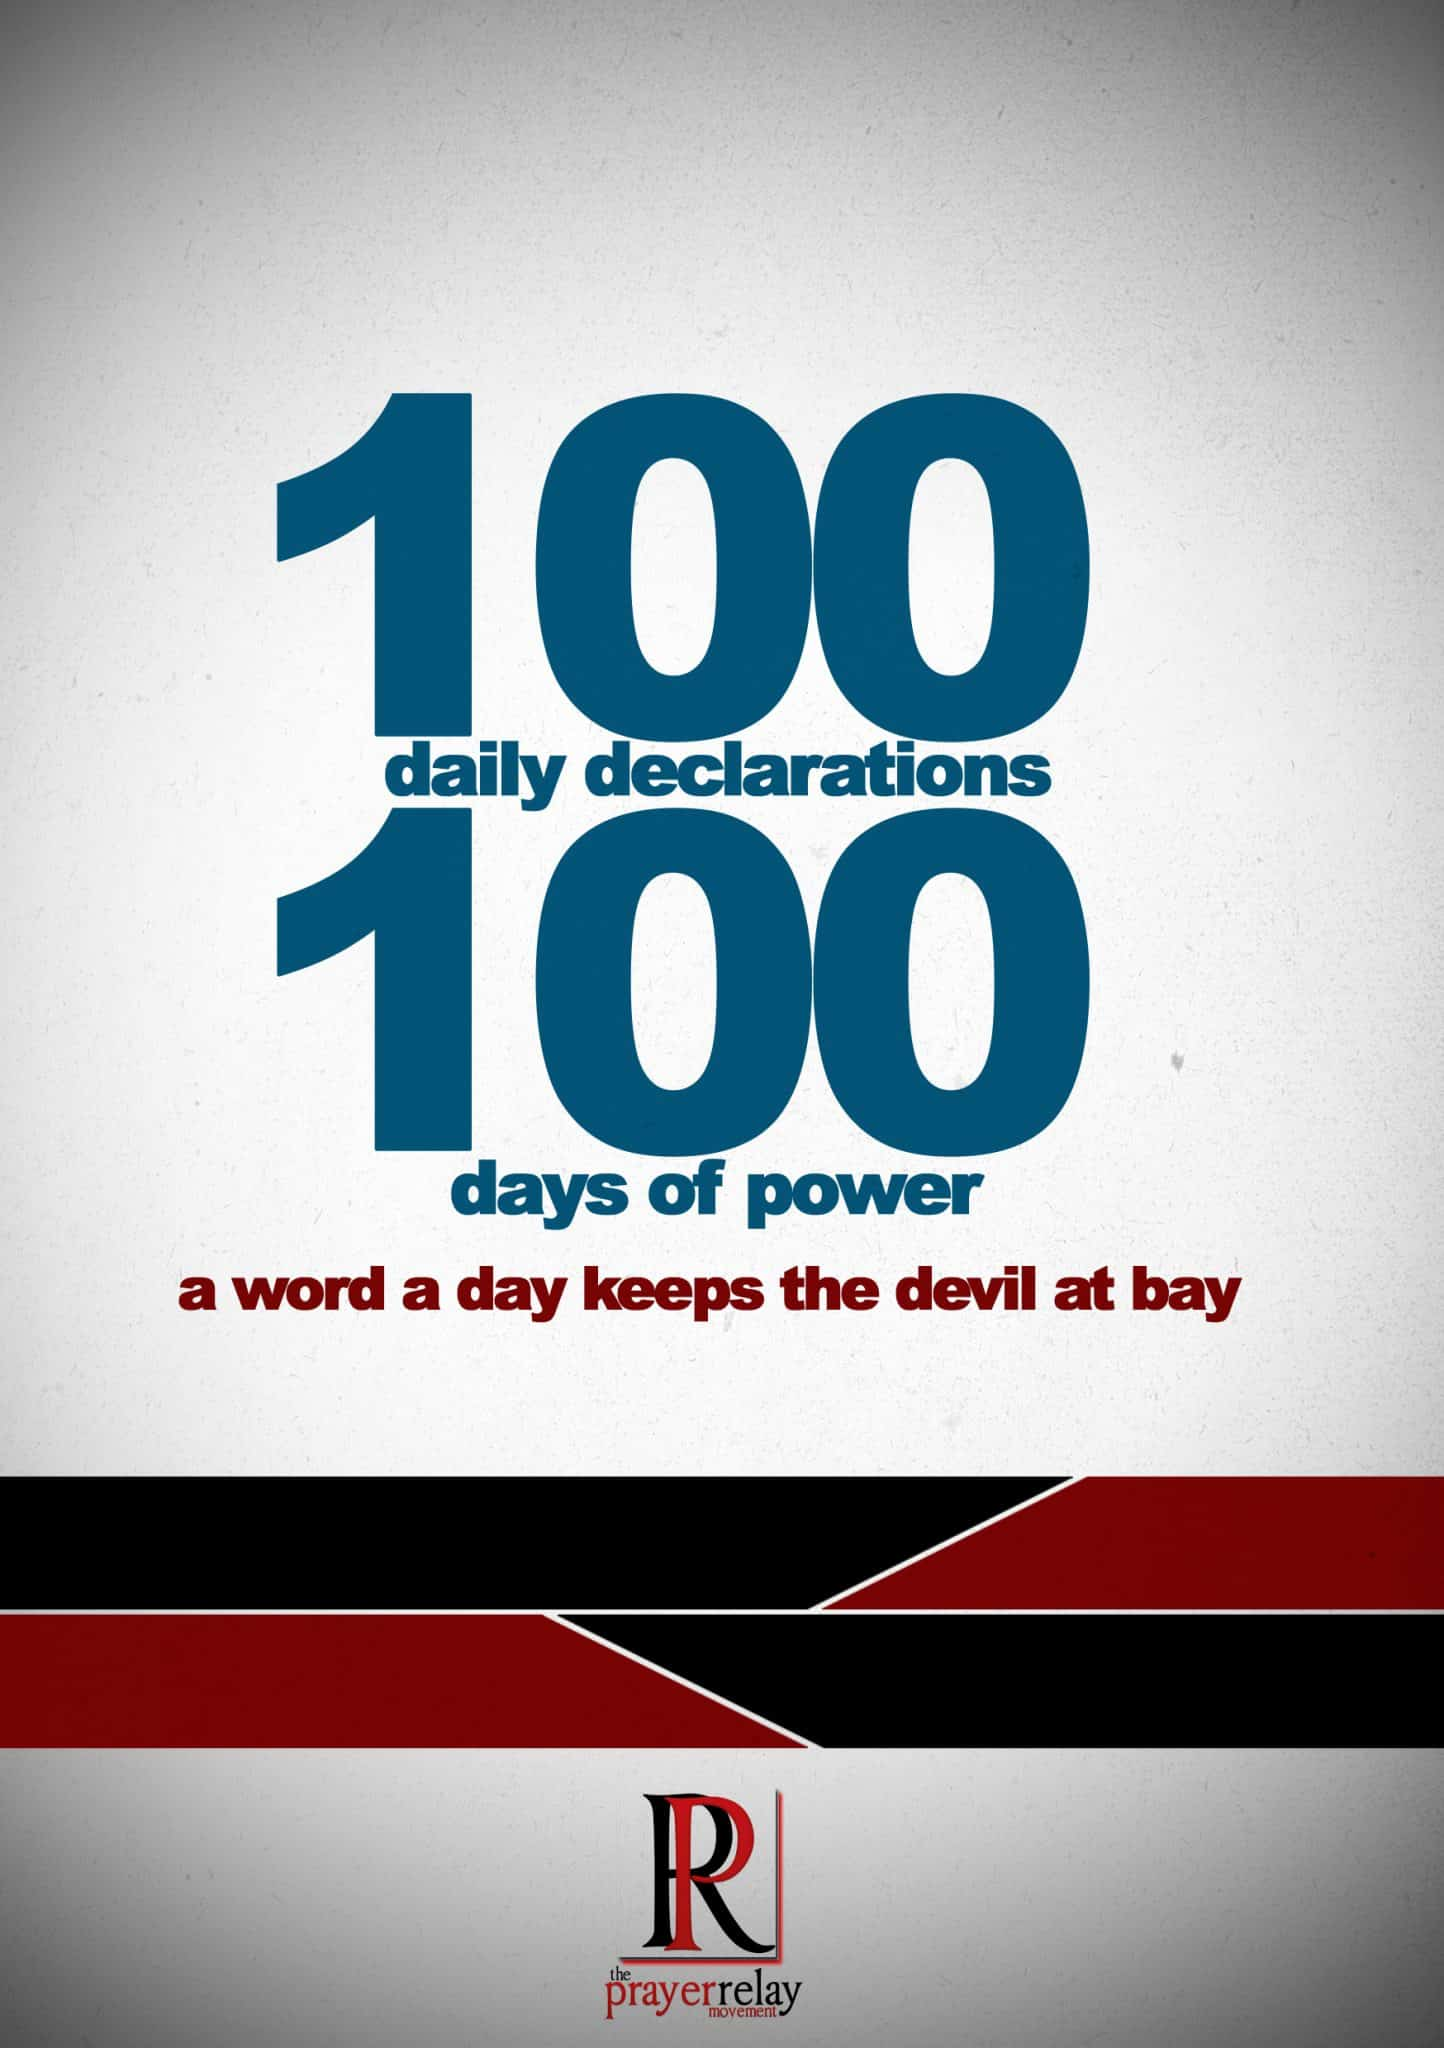 Read Our Wonderful Debut 100 Daily Declarations Book - The